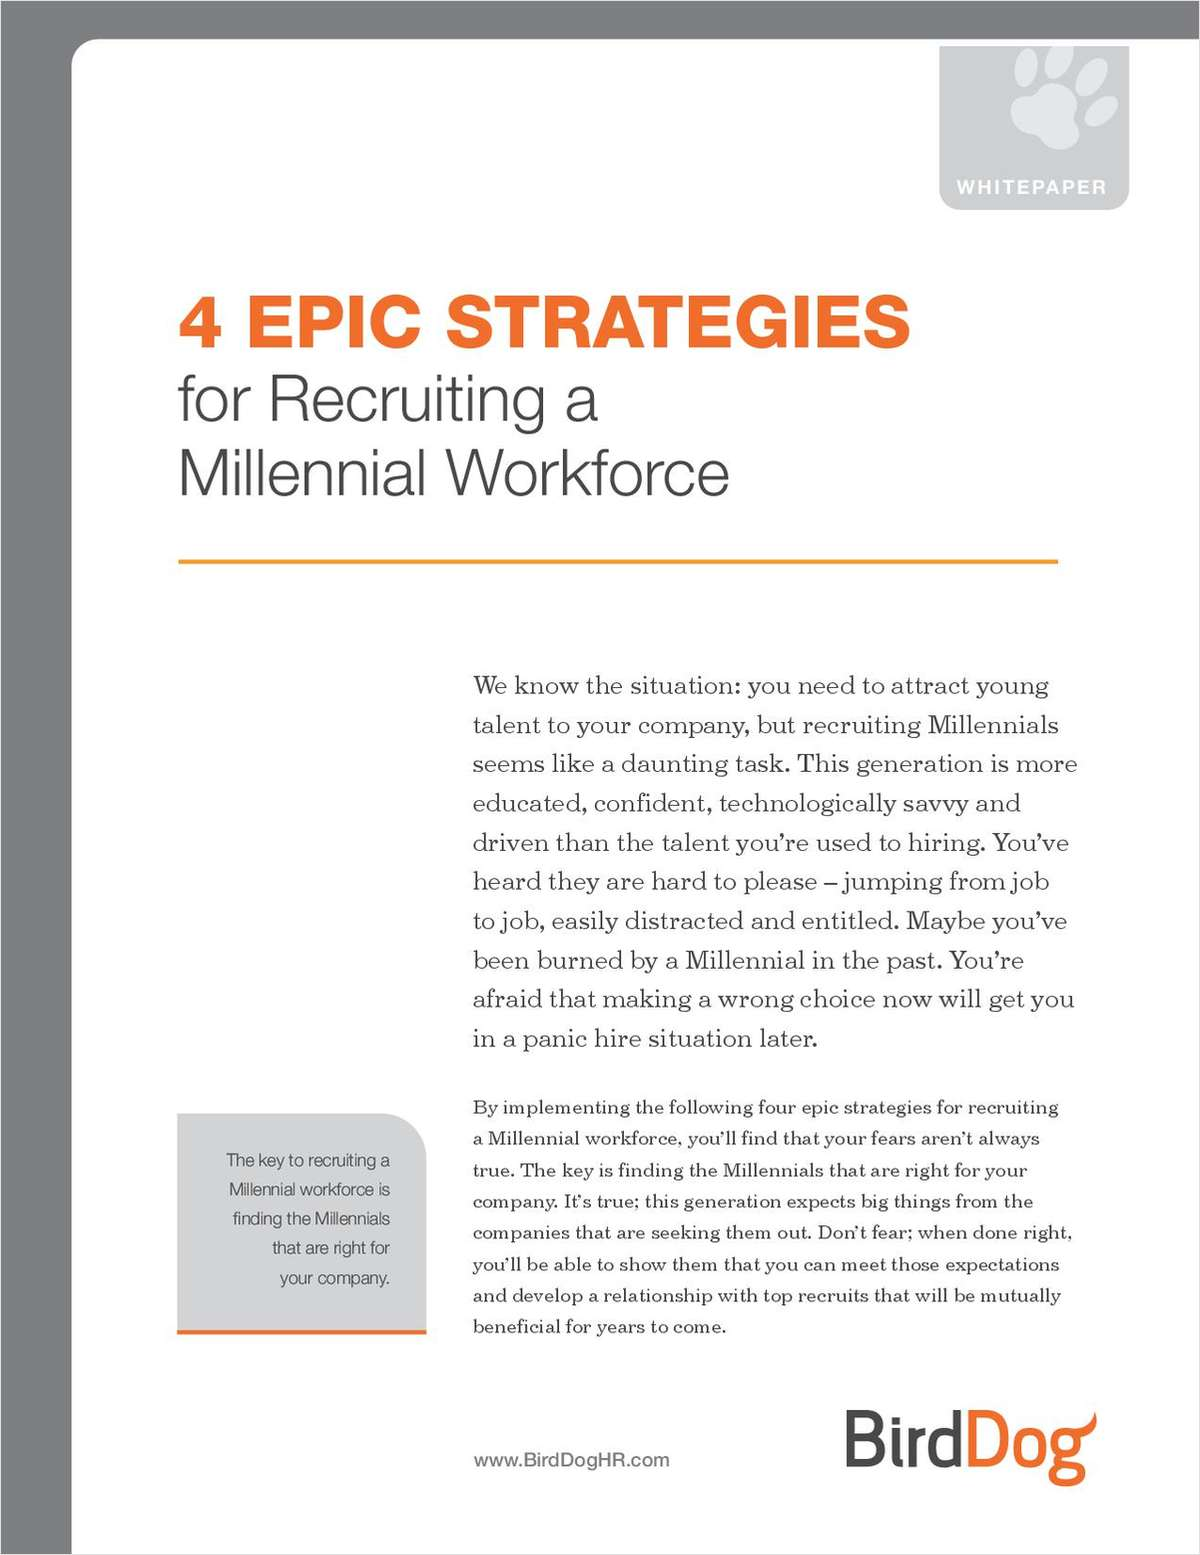 Epic Strategies for Recruiting a Millennial Workforce